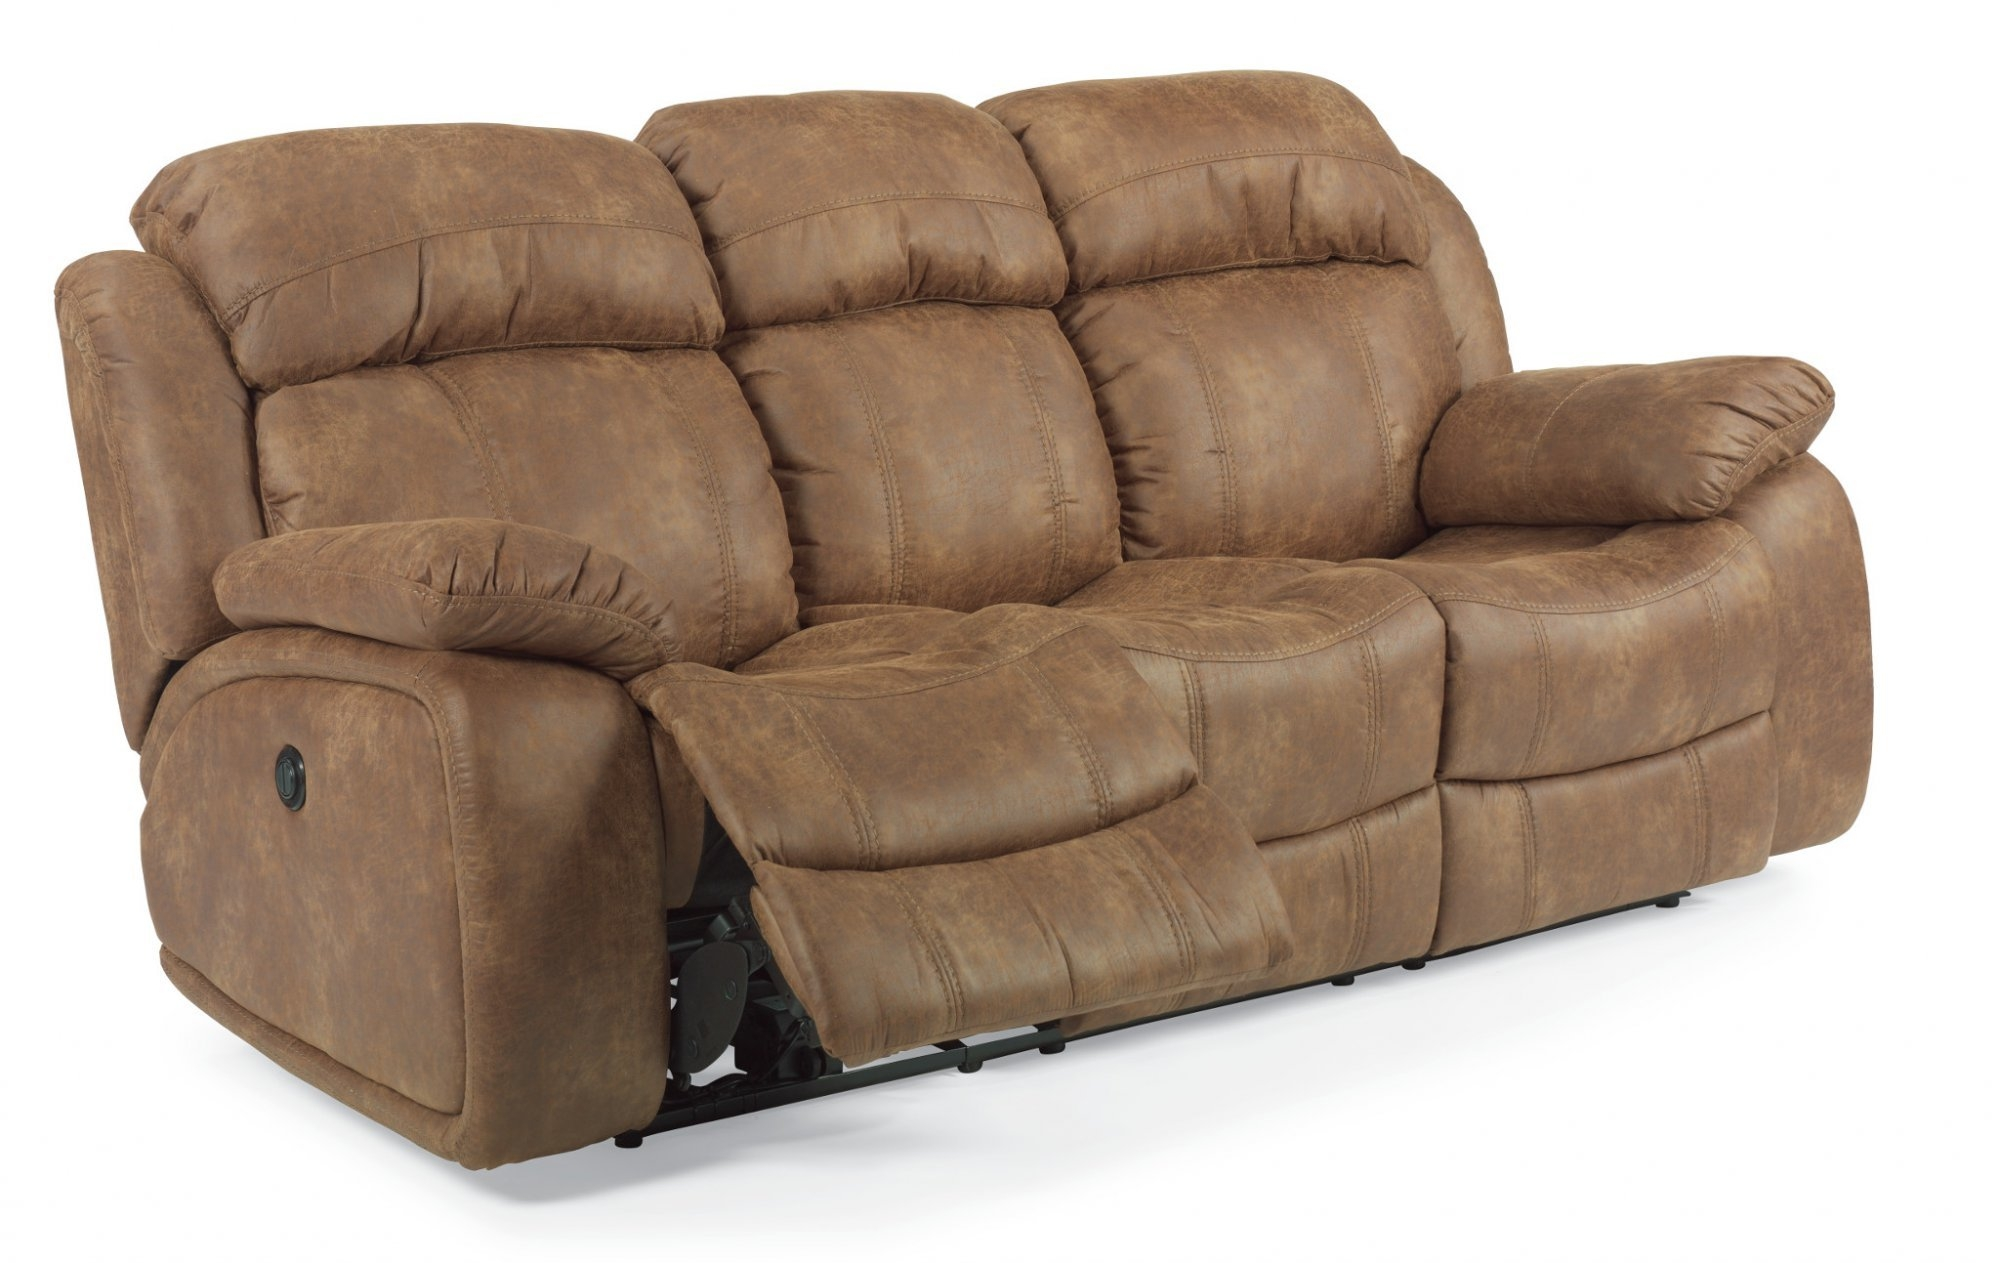 Furniture Nice Interior Furniture Design Robert Michaels Regarding Down Feather Sectional Sofa (View 12 of 15)